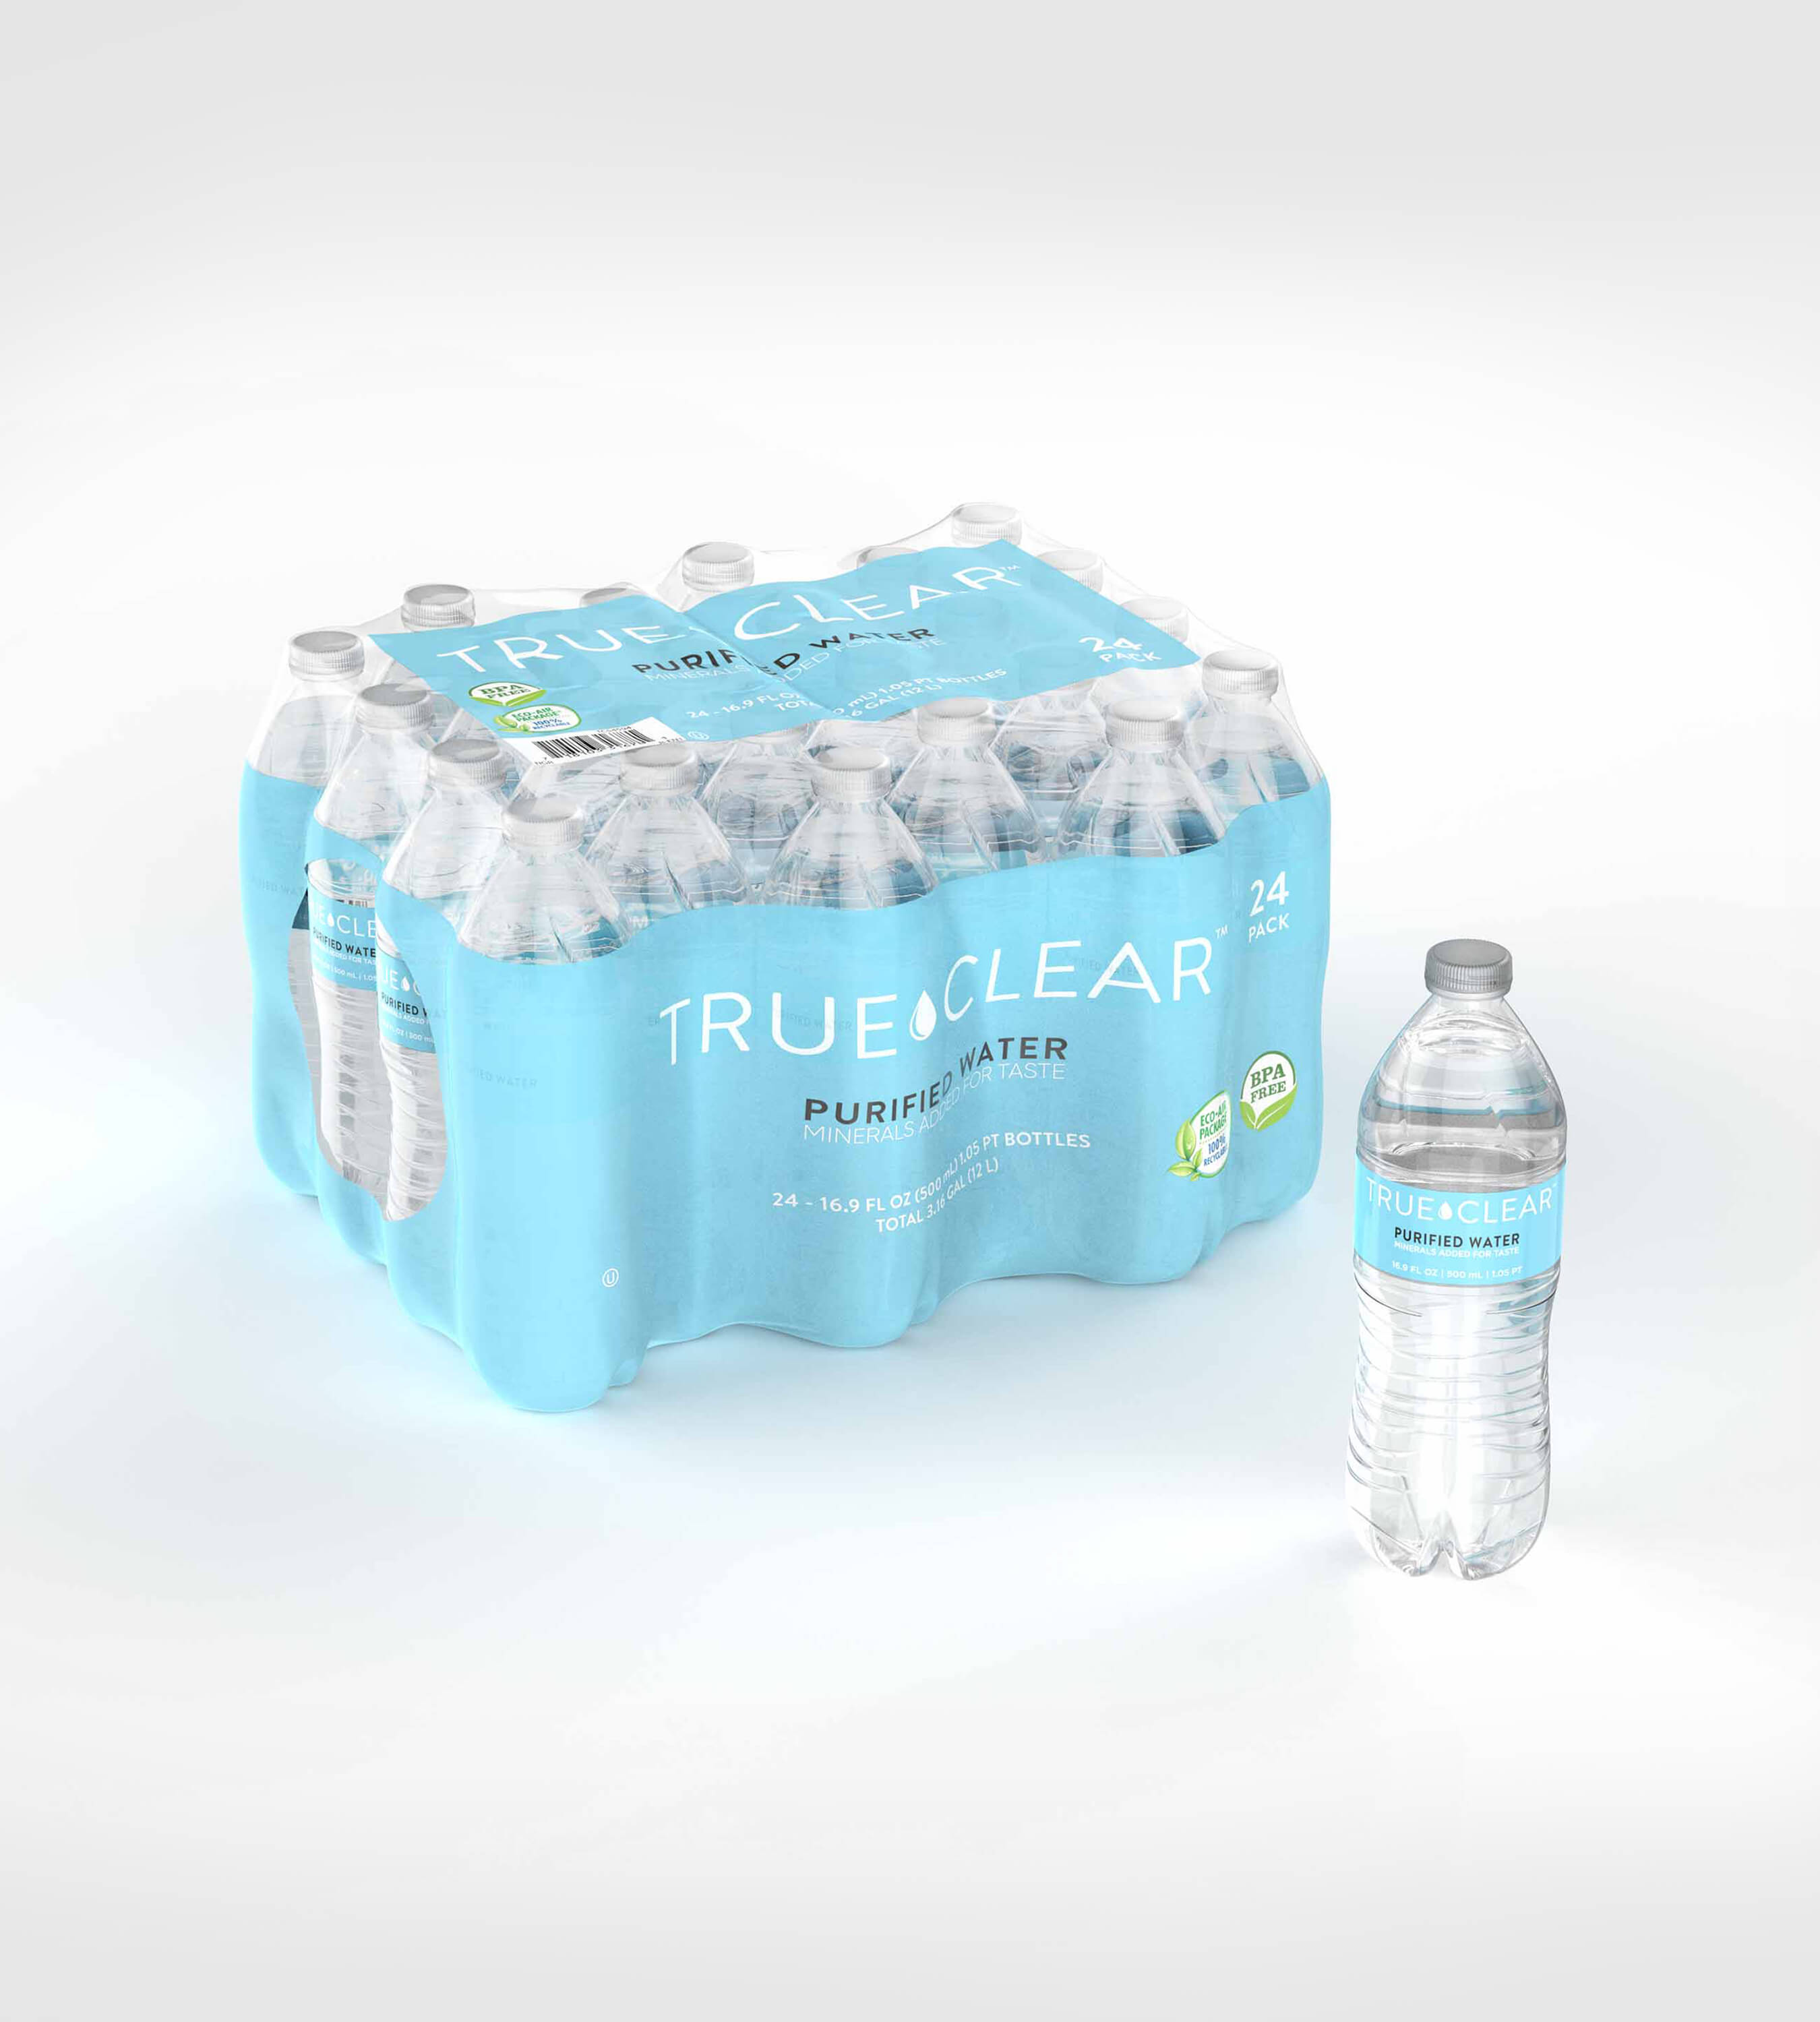 3D CAD Render by Sprout Studios of water bottles